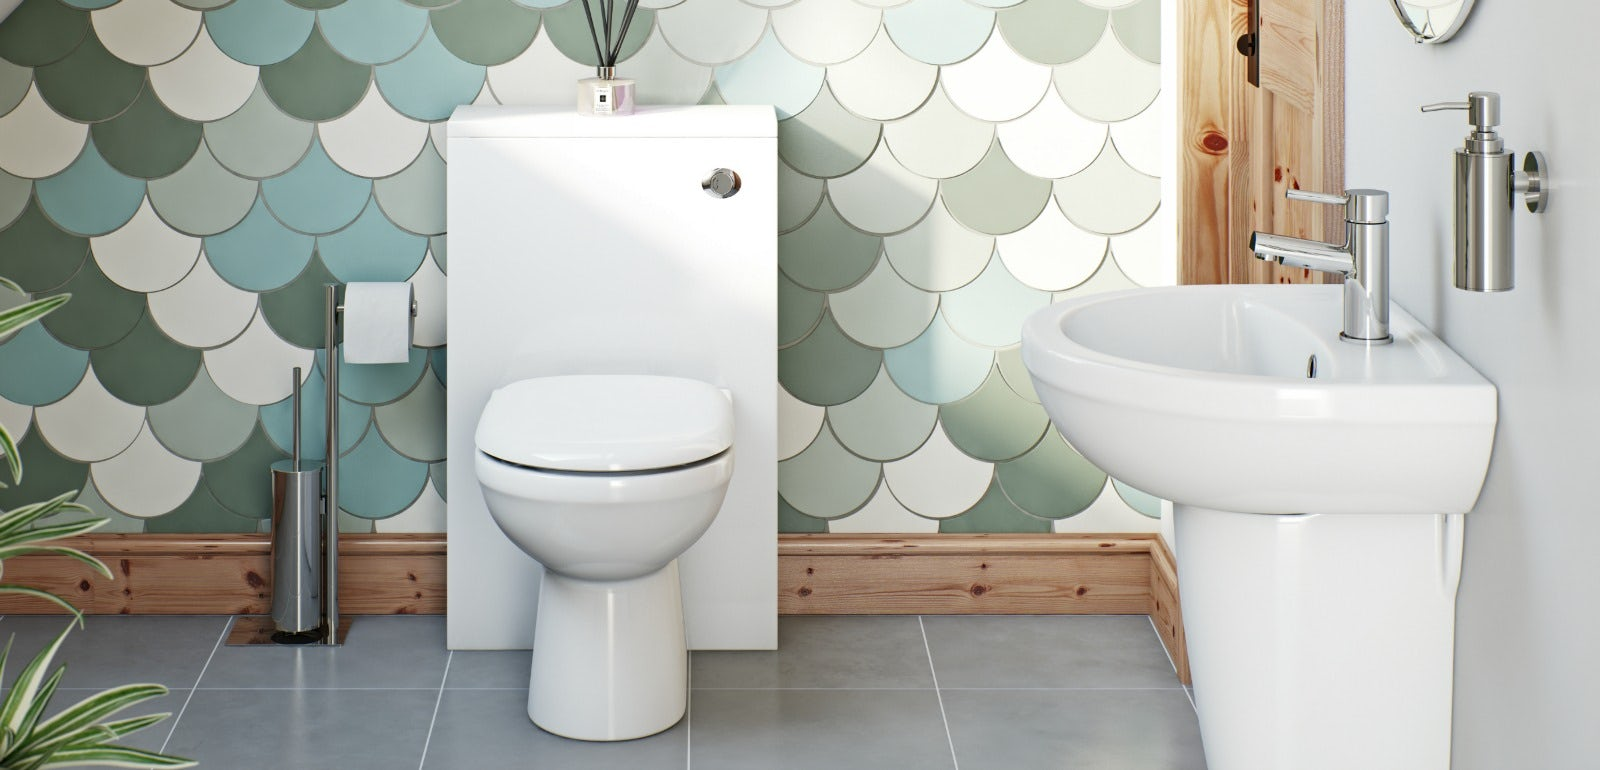 We predict unusual textures and space usage will be leading bathroom trends for 2014 & Top bathroom trends for 2014 | VictoriaPlum.com